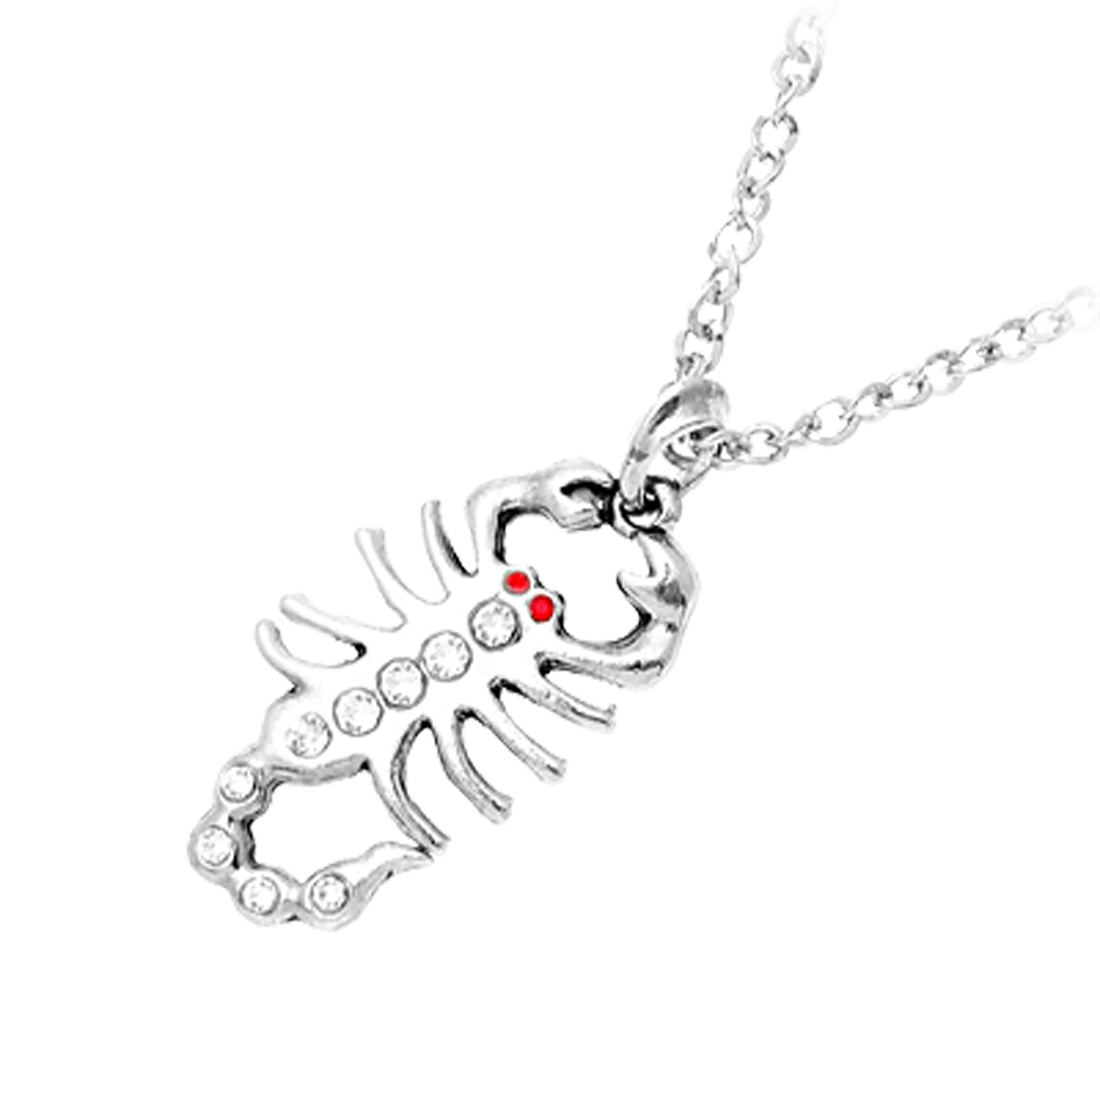 Fashion Jewelry Lobster Pendant with Man-made Crystal Chain Necklace